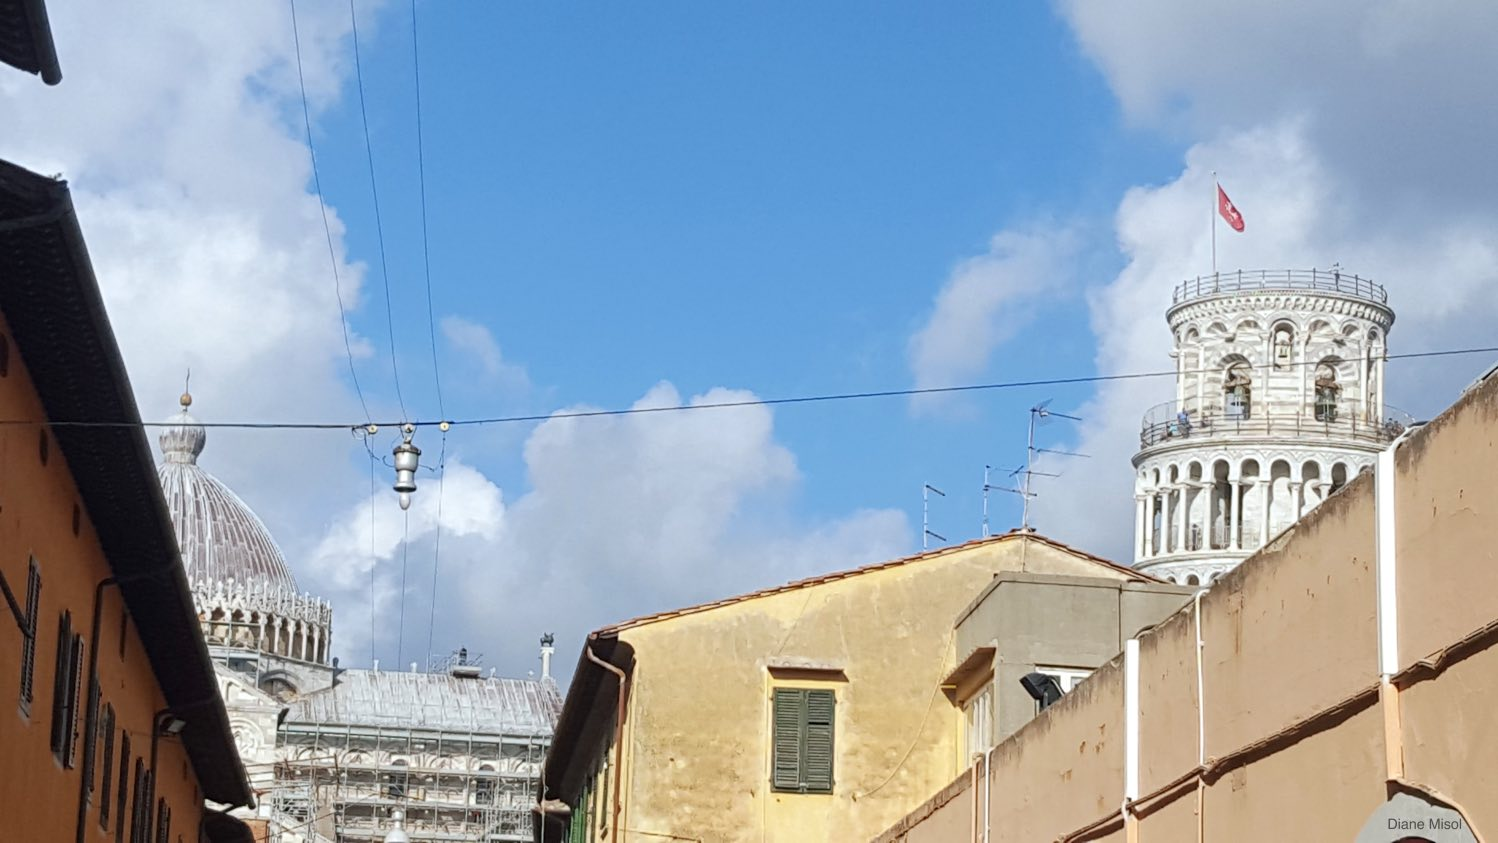 Tower Peaking Over the Rooftops, Pisa, Italy